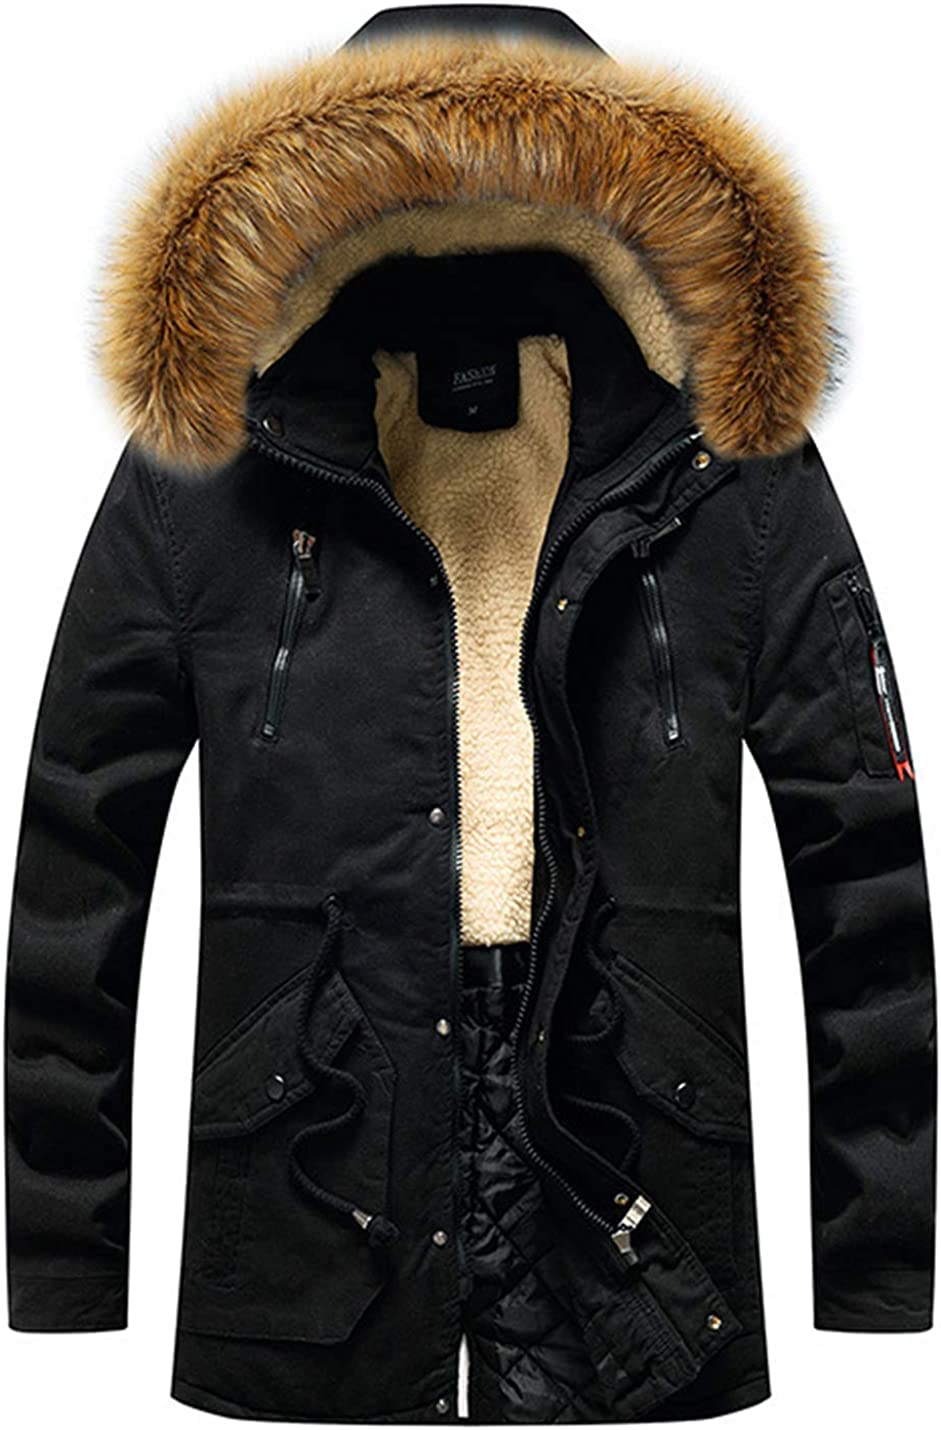 PAODIKUAI Men's Sherpa Lined Hooded Parka Coat Quilted Parka with Faux Fur Trim